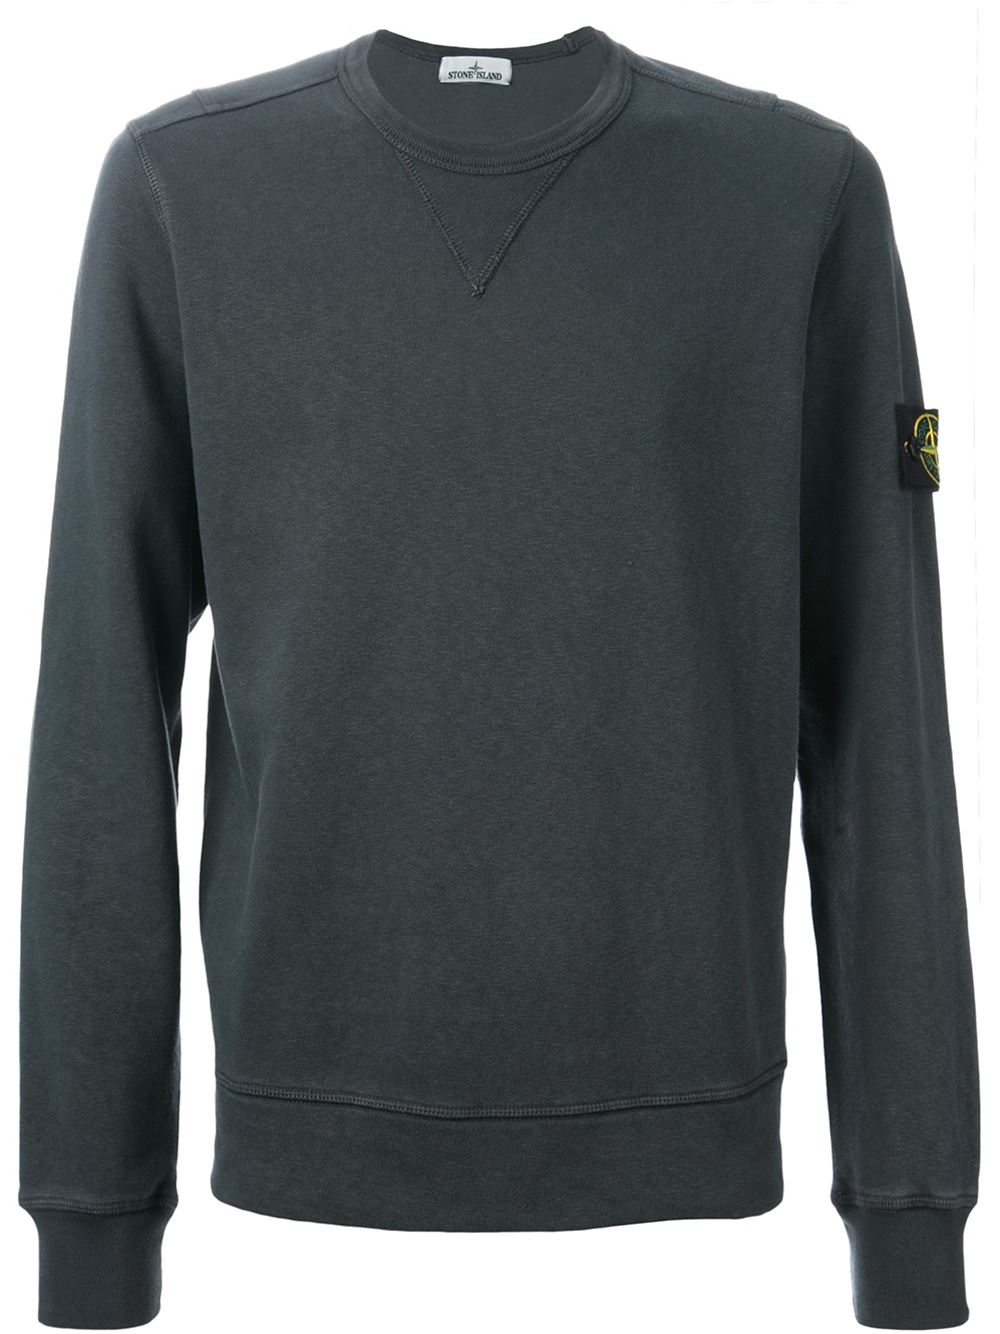 stone island crew neck sweatshirt in gray for men lyst. Black Bedroom Furniture Sets. Home Design Ideas